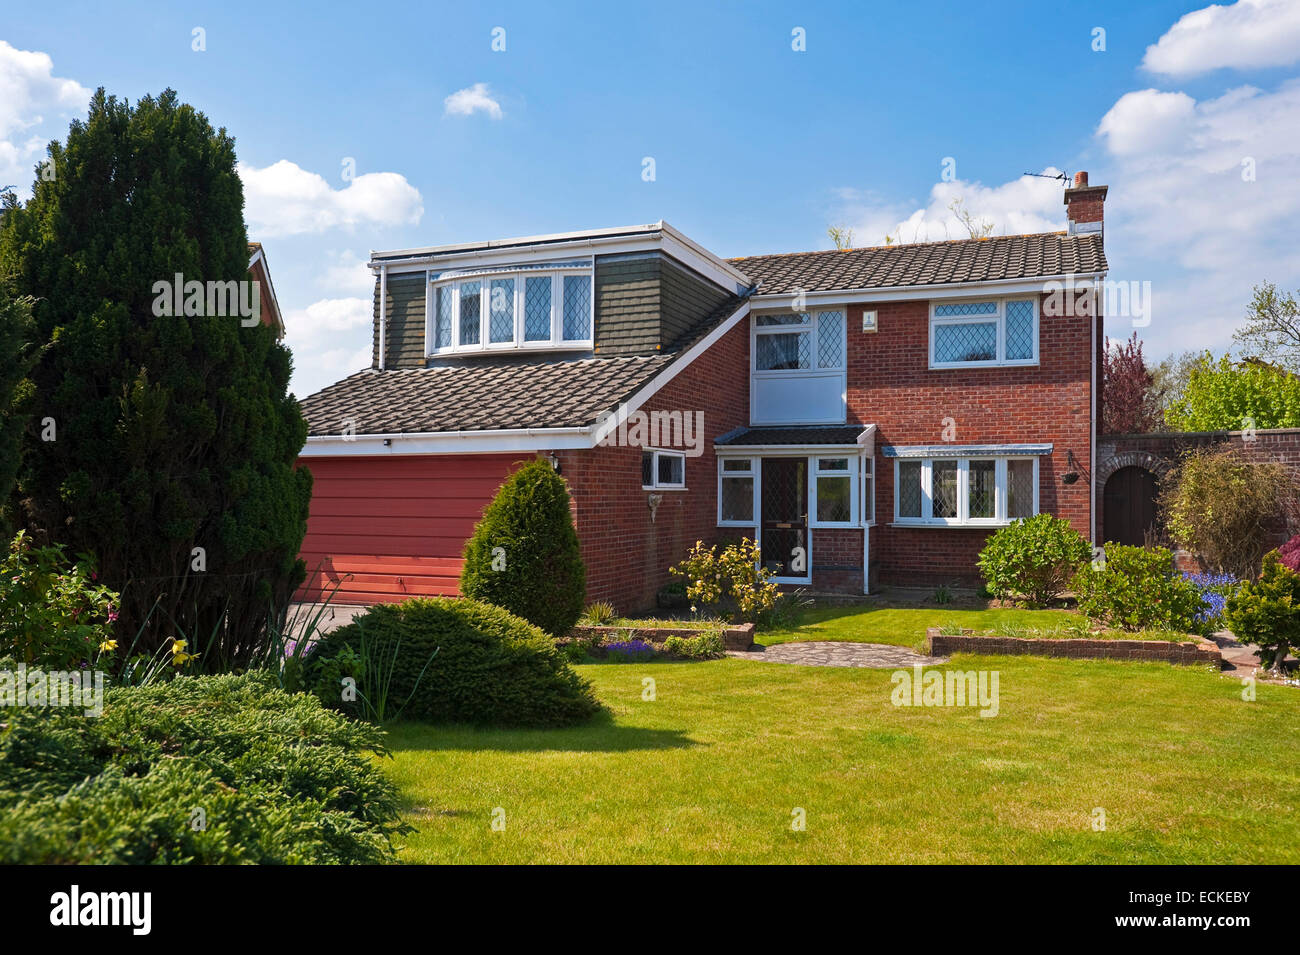 Horizontal exterior of a typical 1980's detached house in the sunshine. Stock Photo